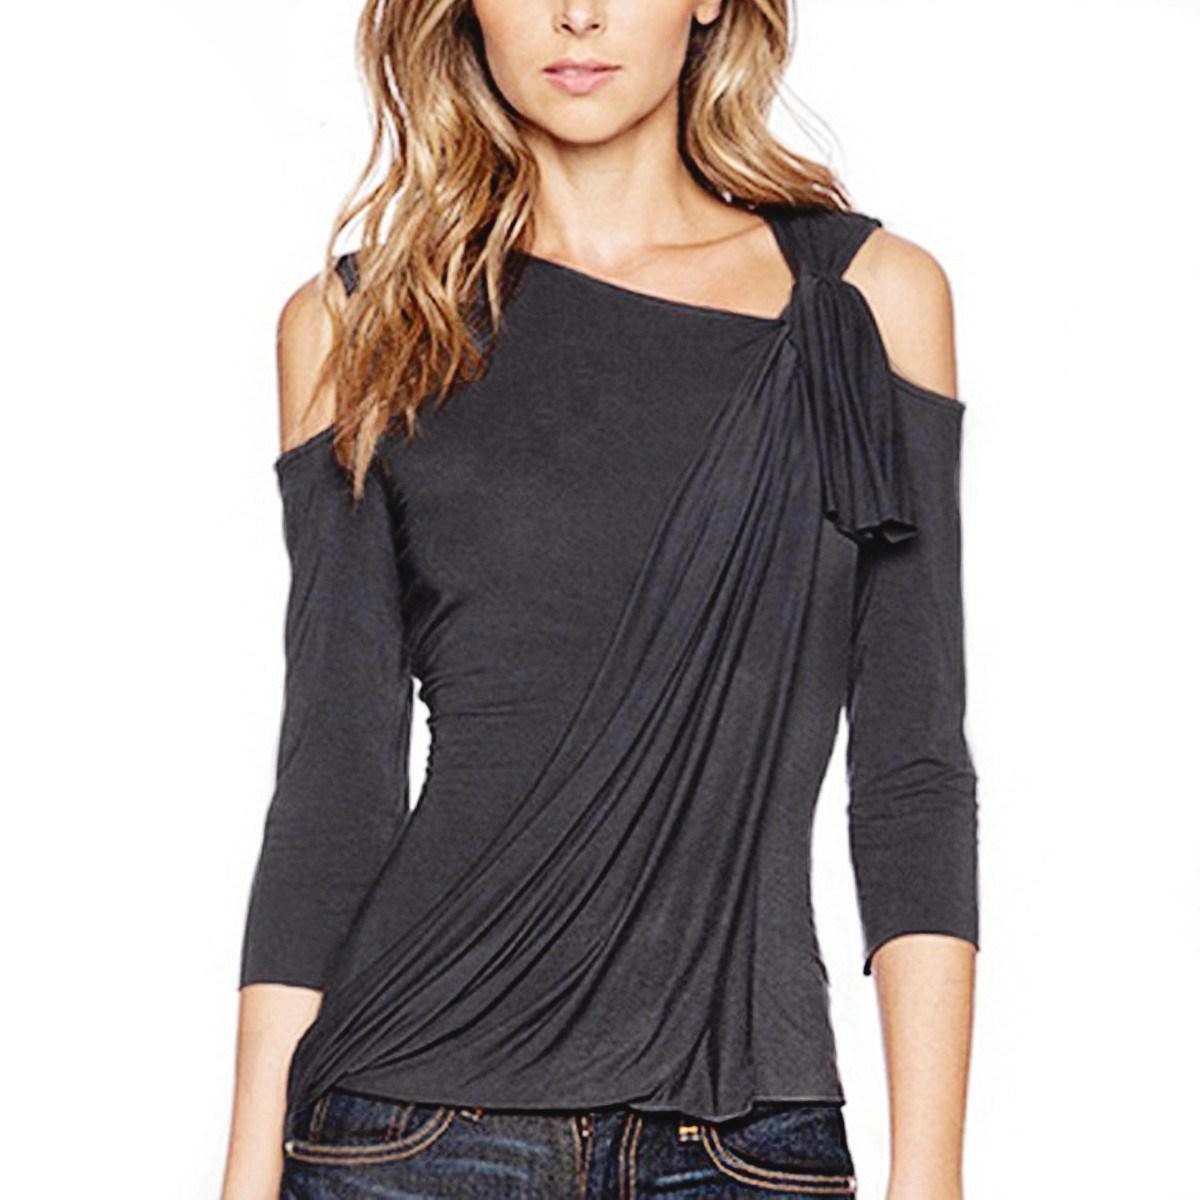 Shirt new design 2015 - 2017 New Design 2015 Autumn Sexy Women Off Shoulder Asymmetrical Hem Blouses Fashion Shirts Casual Solid Blusas Tops Plus Size From Goodday57